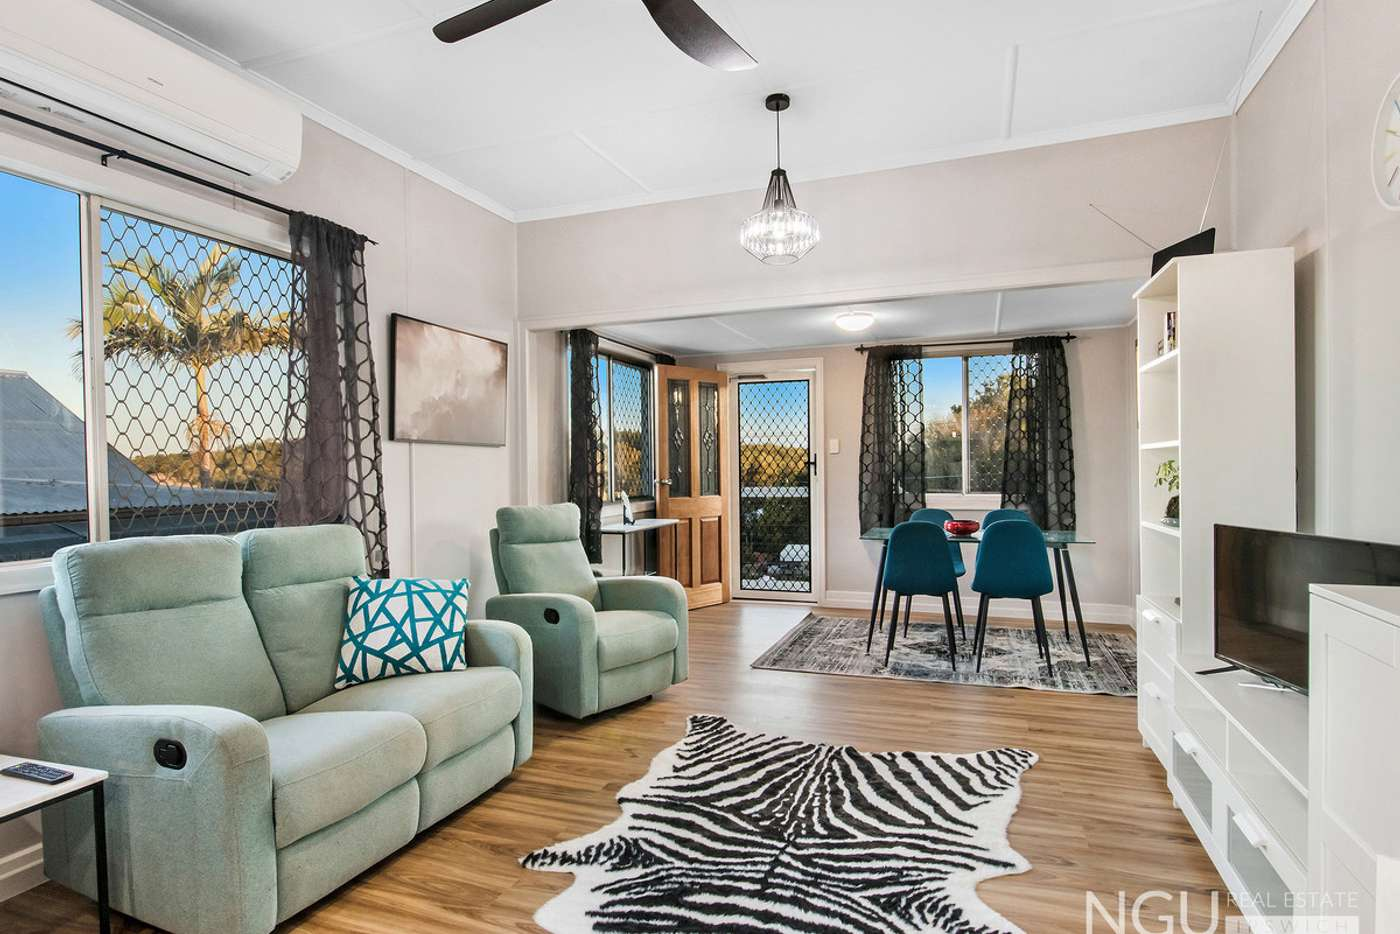 Fifth view of Homely house listing, 15 Chilcot Street, Silkstone QLD 4304